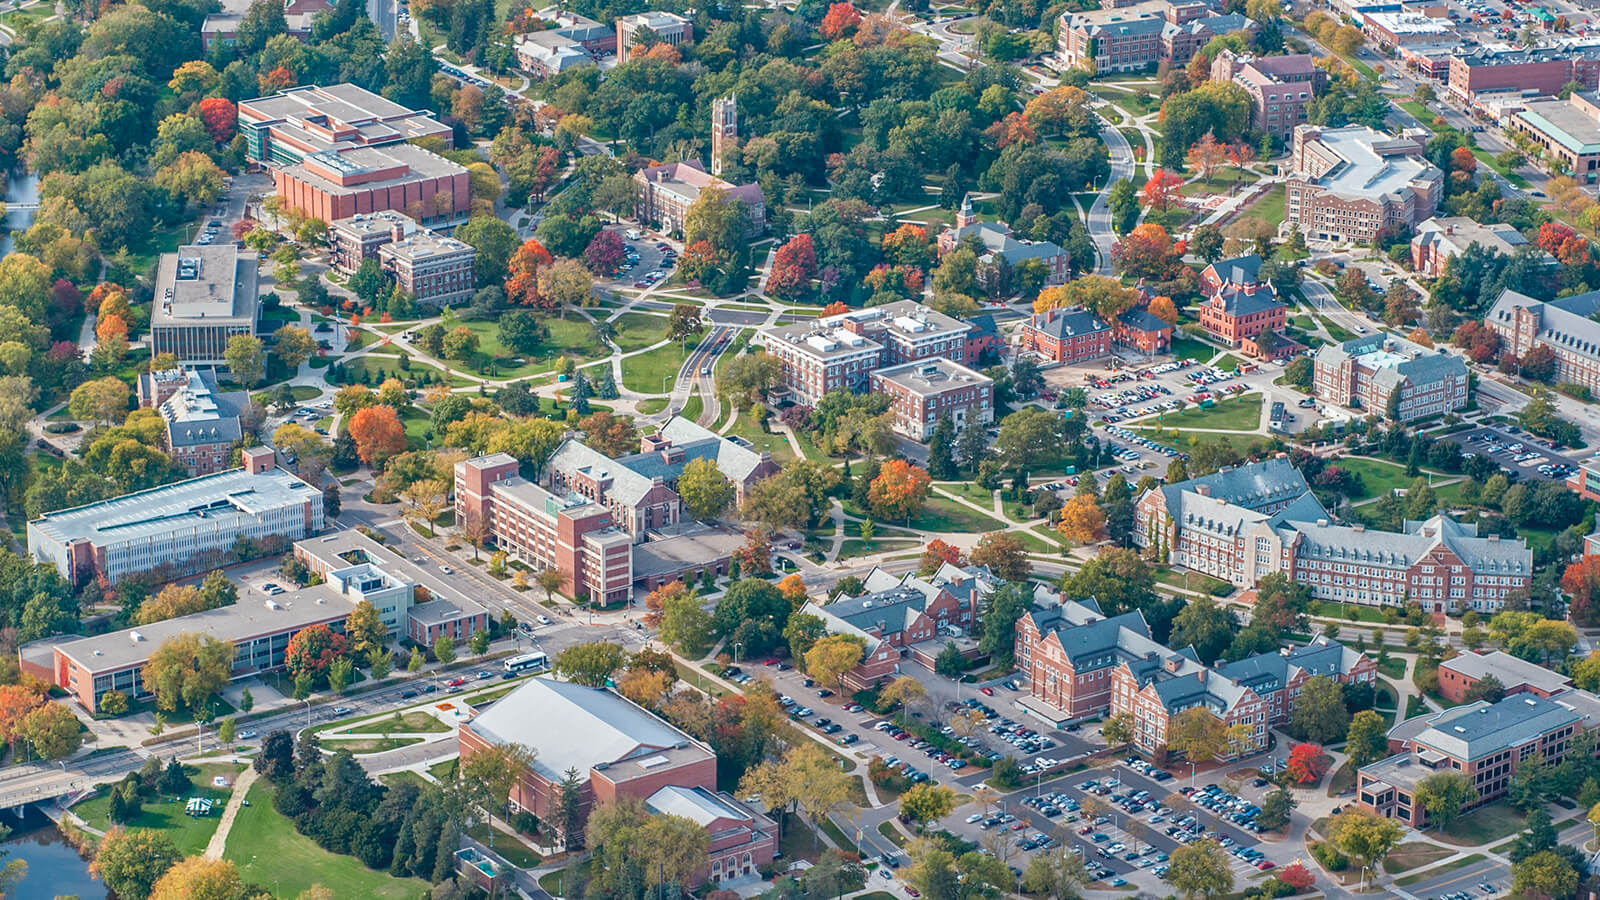 An overhead view of the campus at Michigan State University